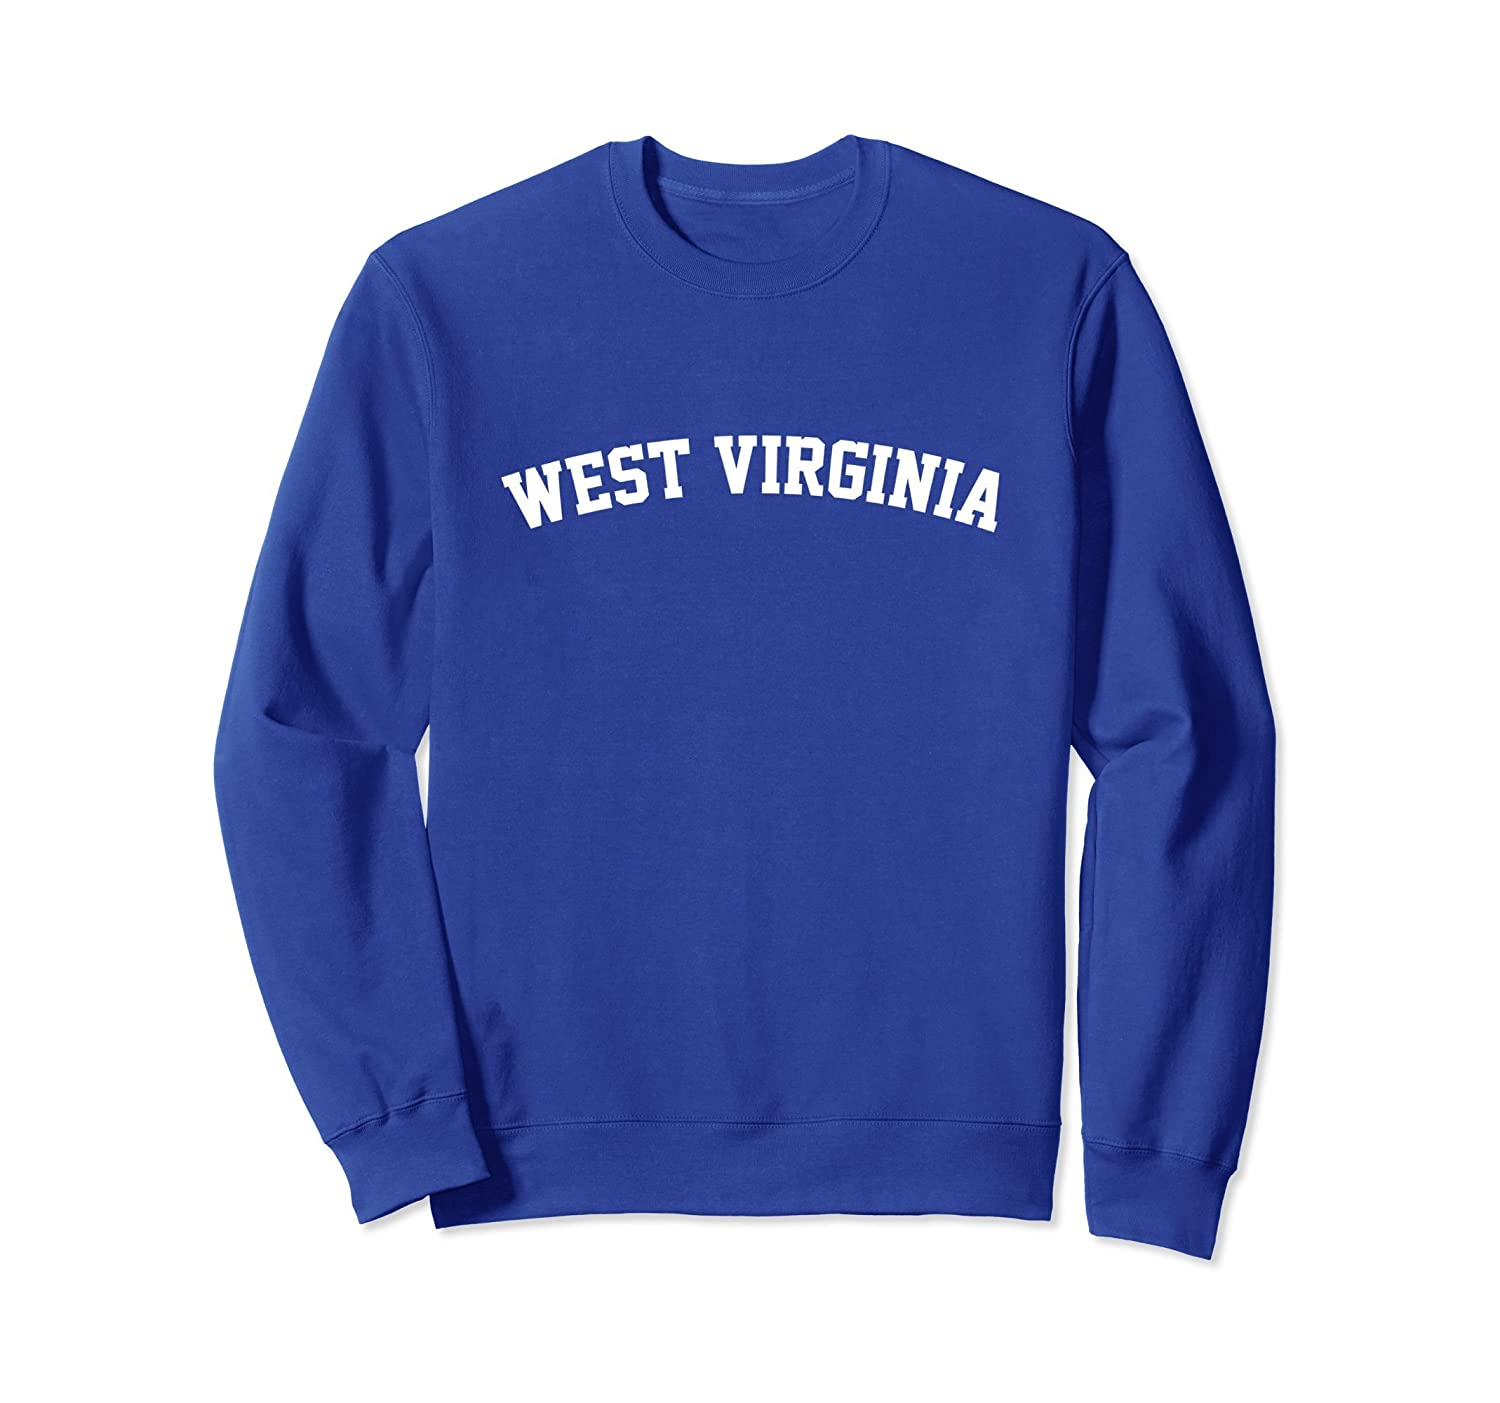 Vintage West Virginia Sweater / Old Retro Sports Gift-TH